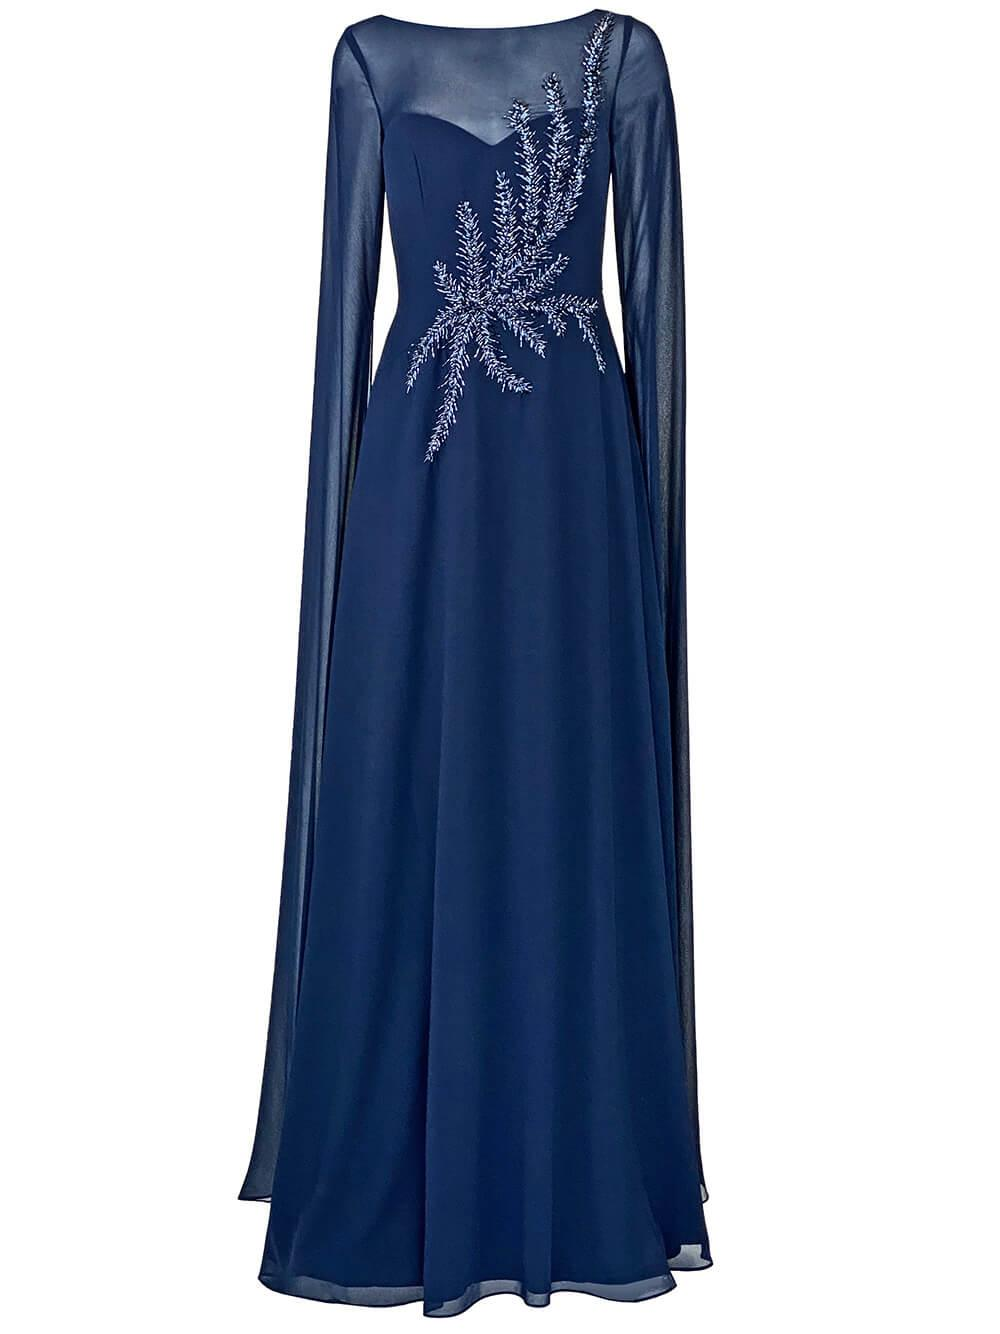 Embellished Chiffon Cape Gown Item # 217047